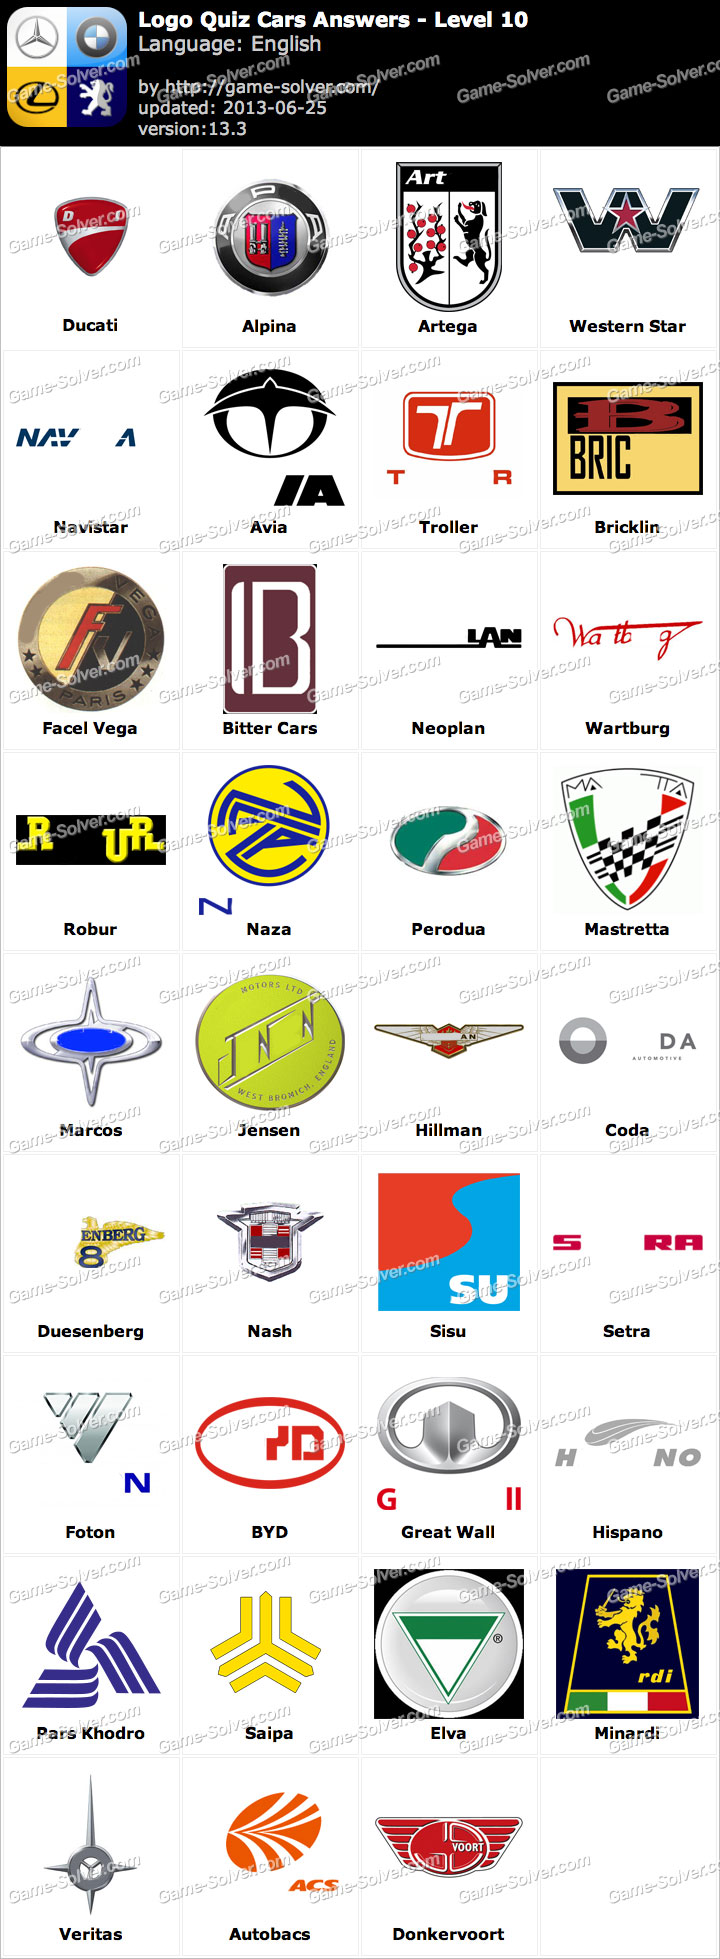 Logo Quiz Cars Answers Level 10 - Game Solver